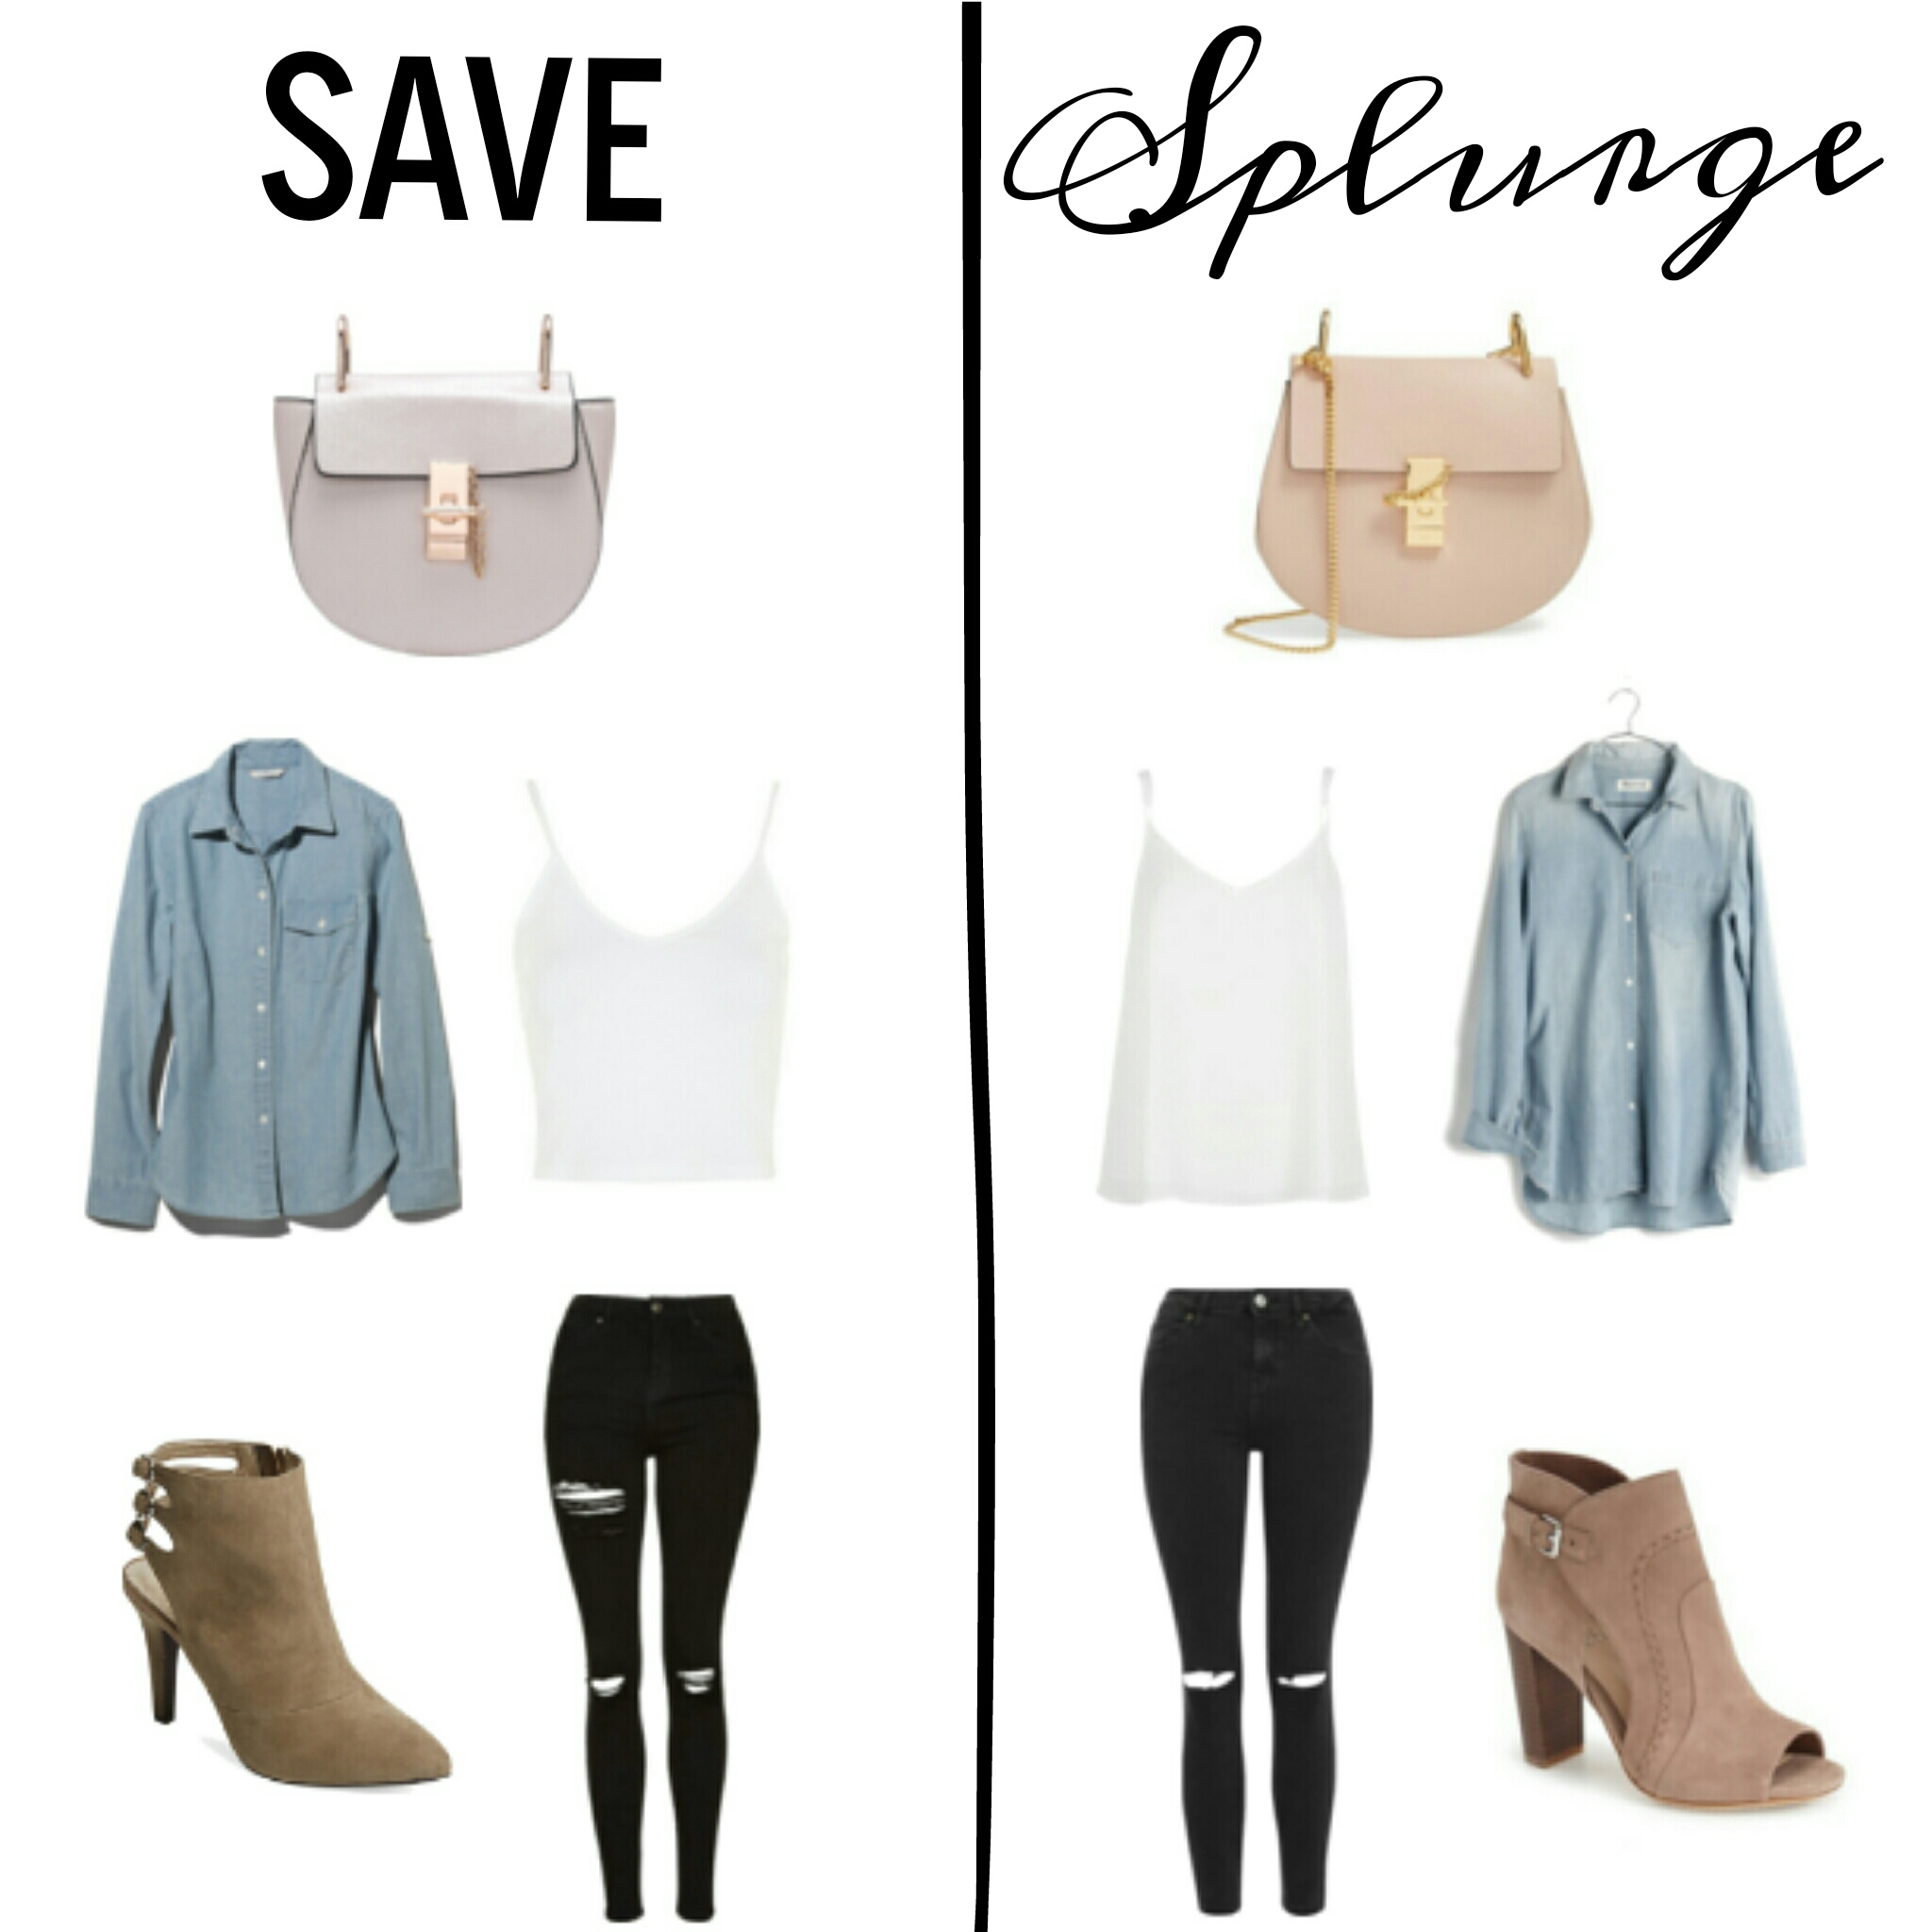 Save or Splurge